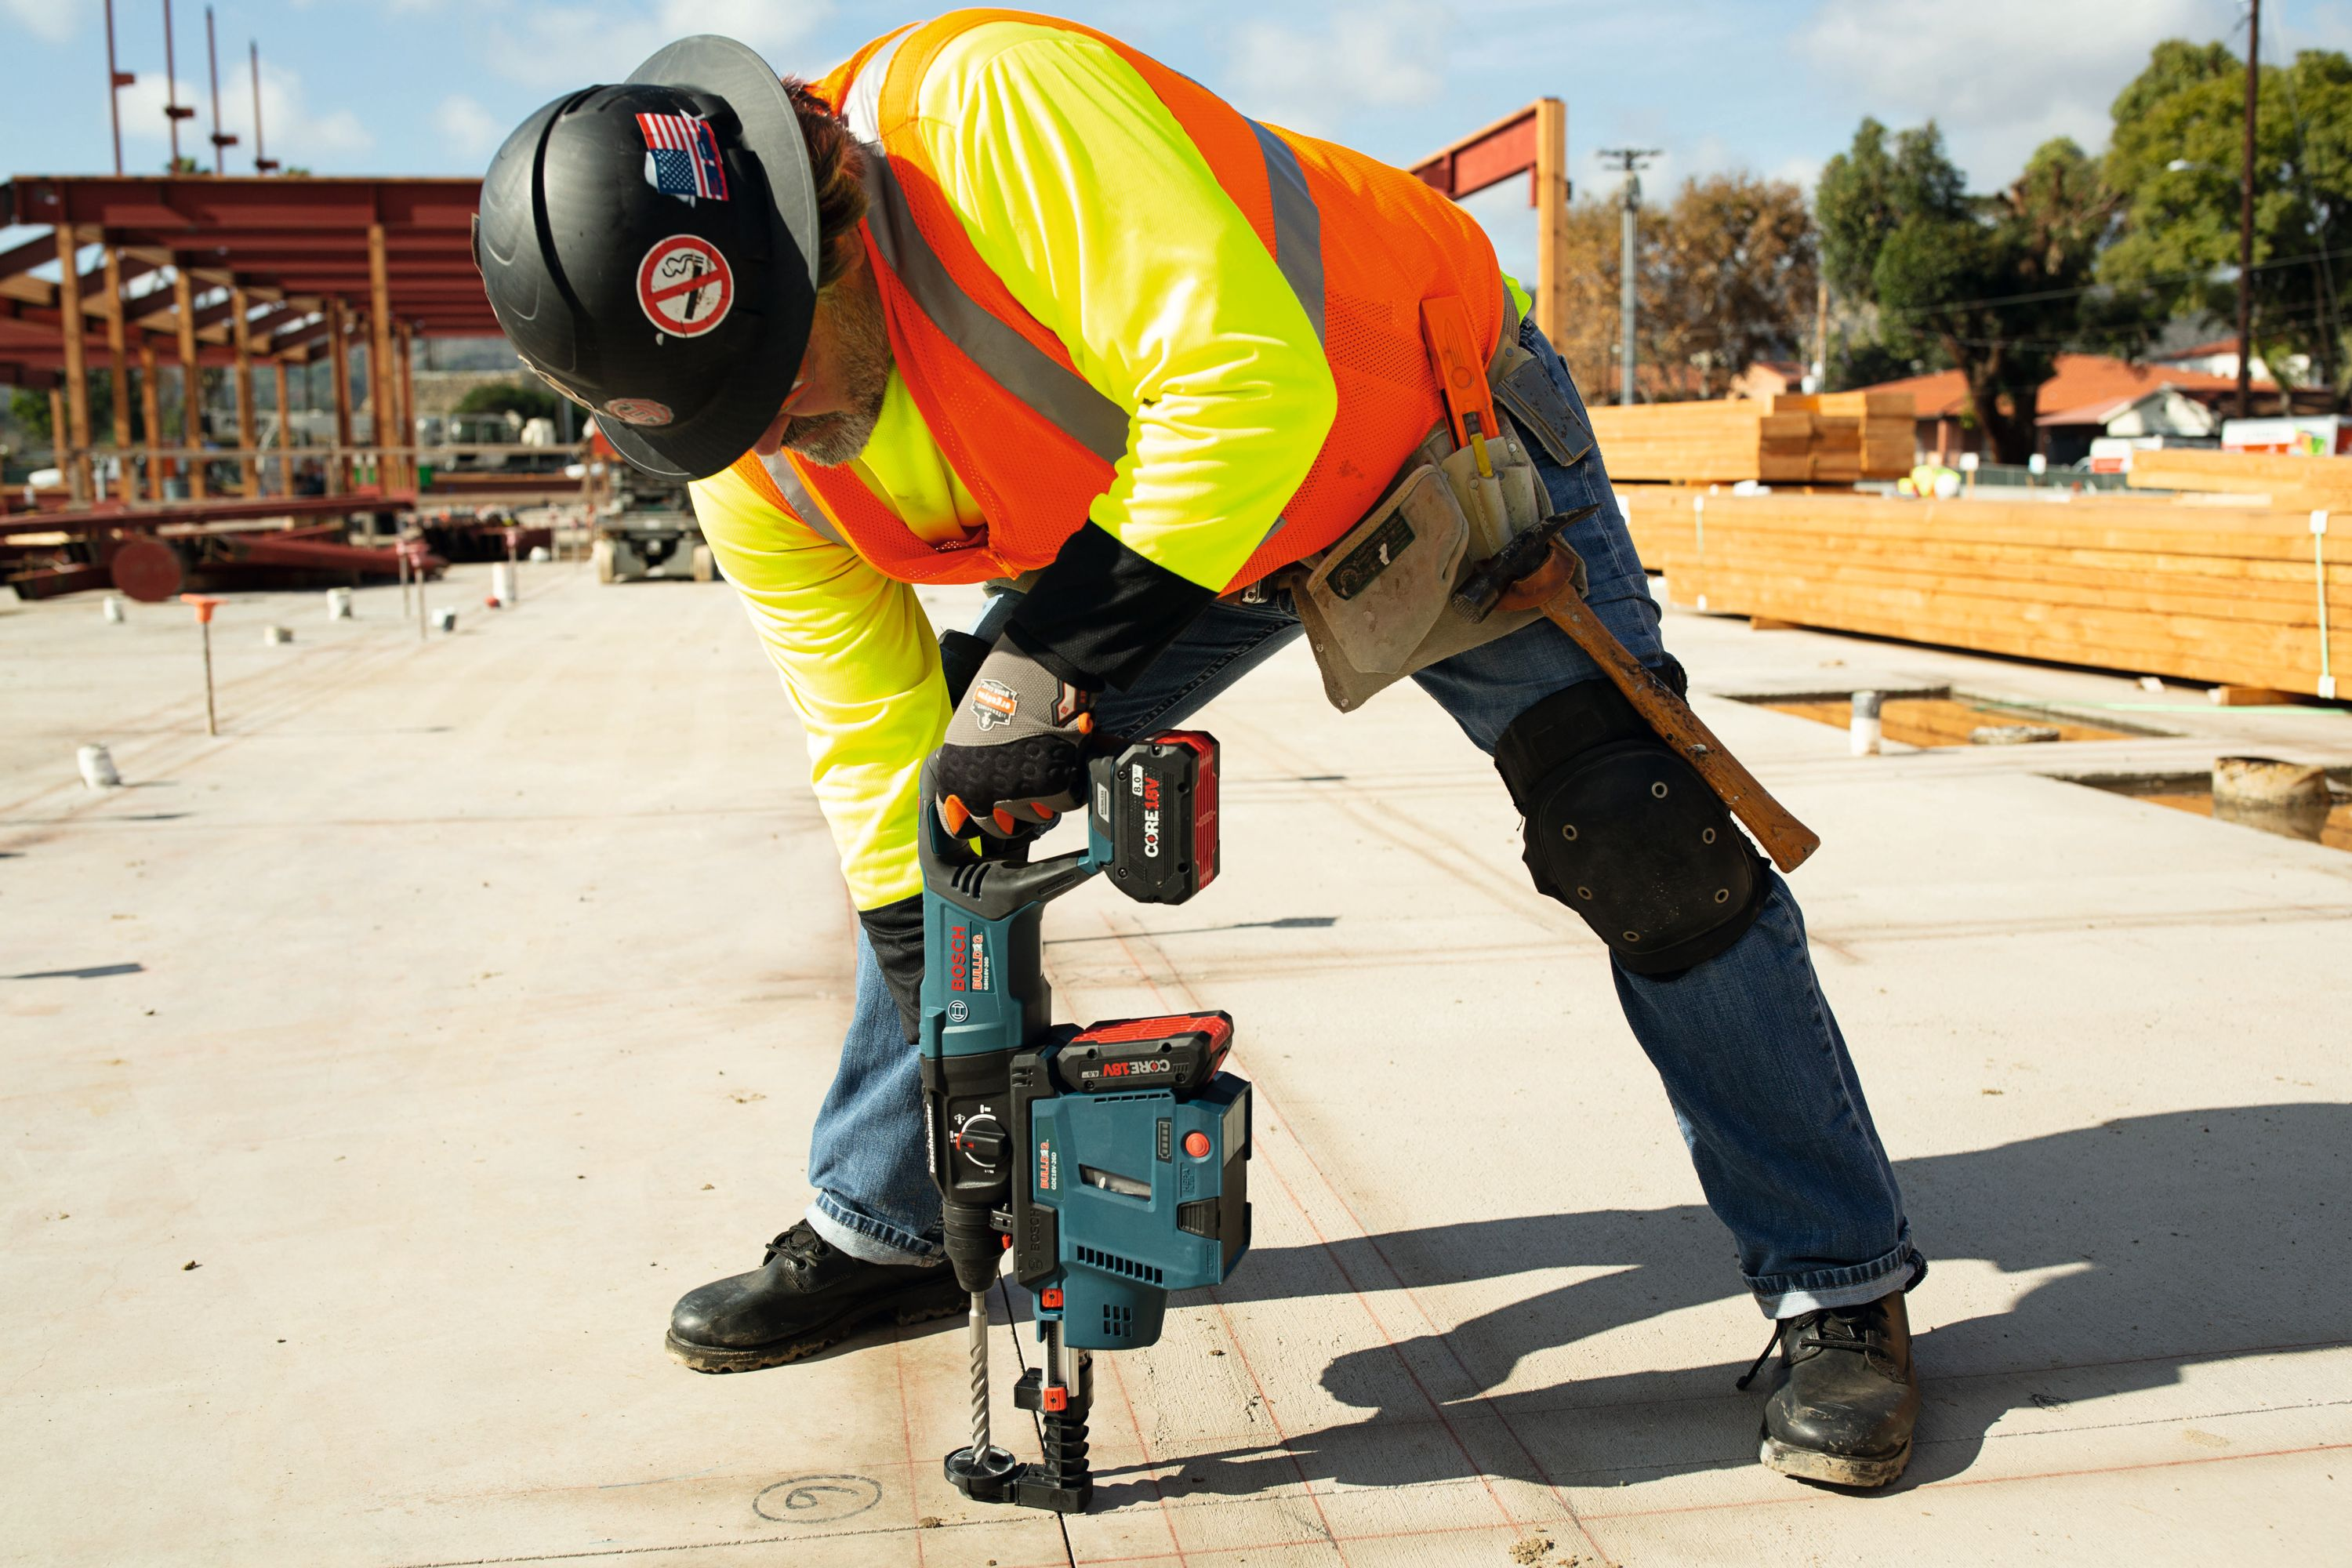 The Bosch GBH18V-26D Bulldog rotary hammer features a variable-speed reversing trigger for accurate bit starting.